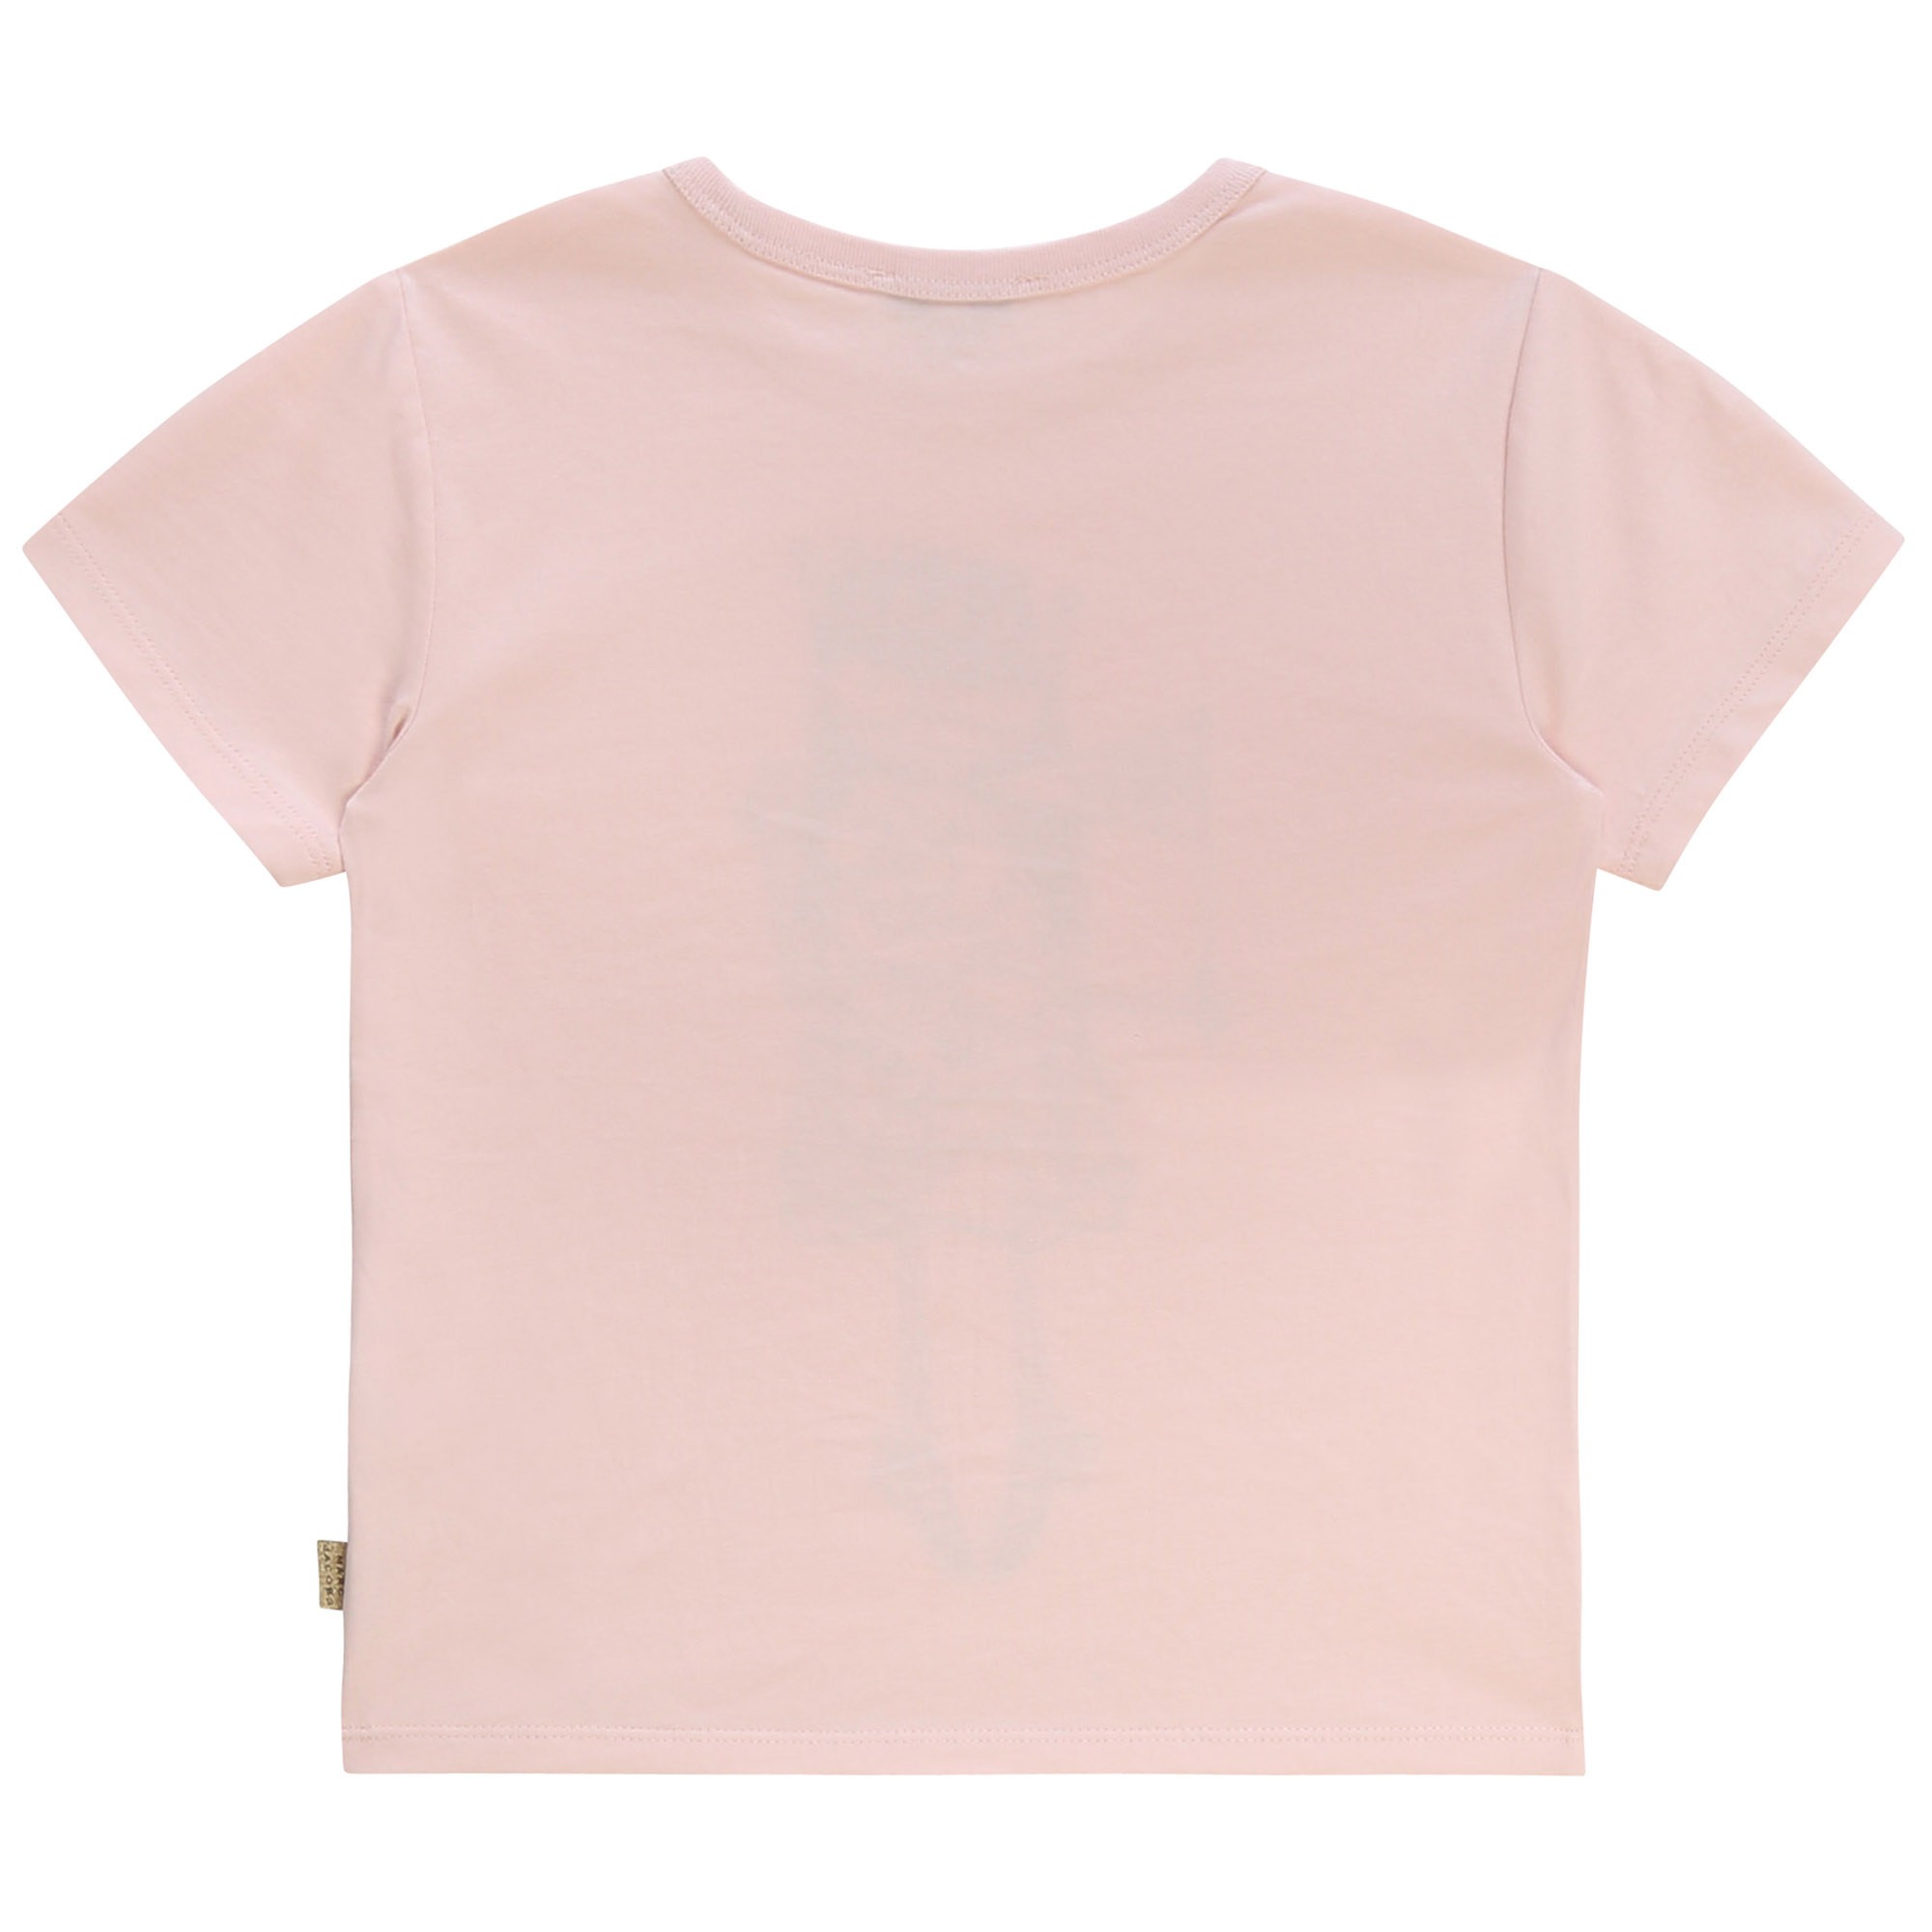 T-shirt in jersey di cotone THE MARC JACOBS Per BAMBINA